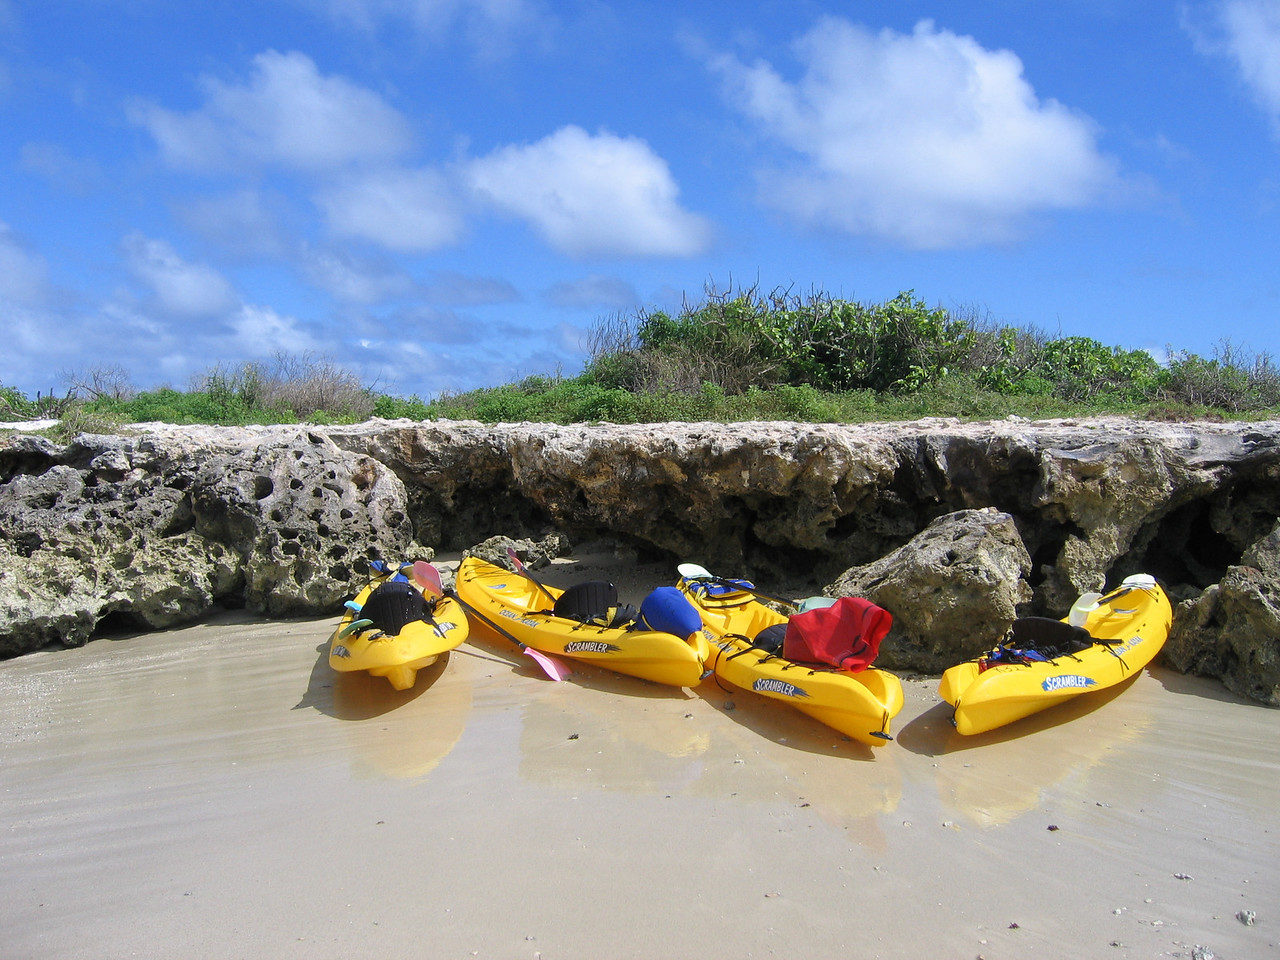 Kayaks at Popoi'a (flat) Island